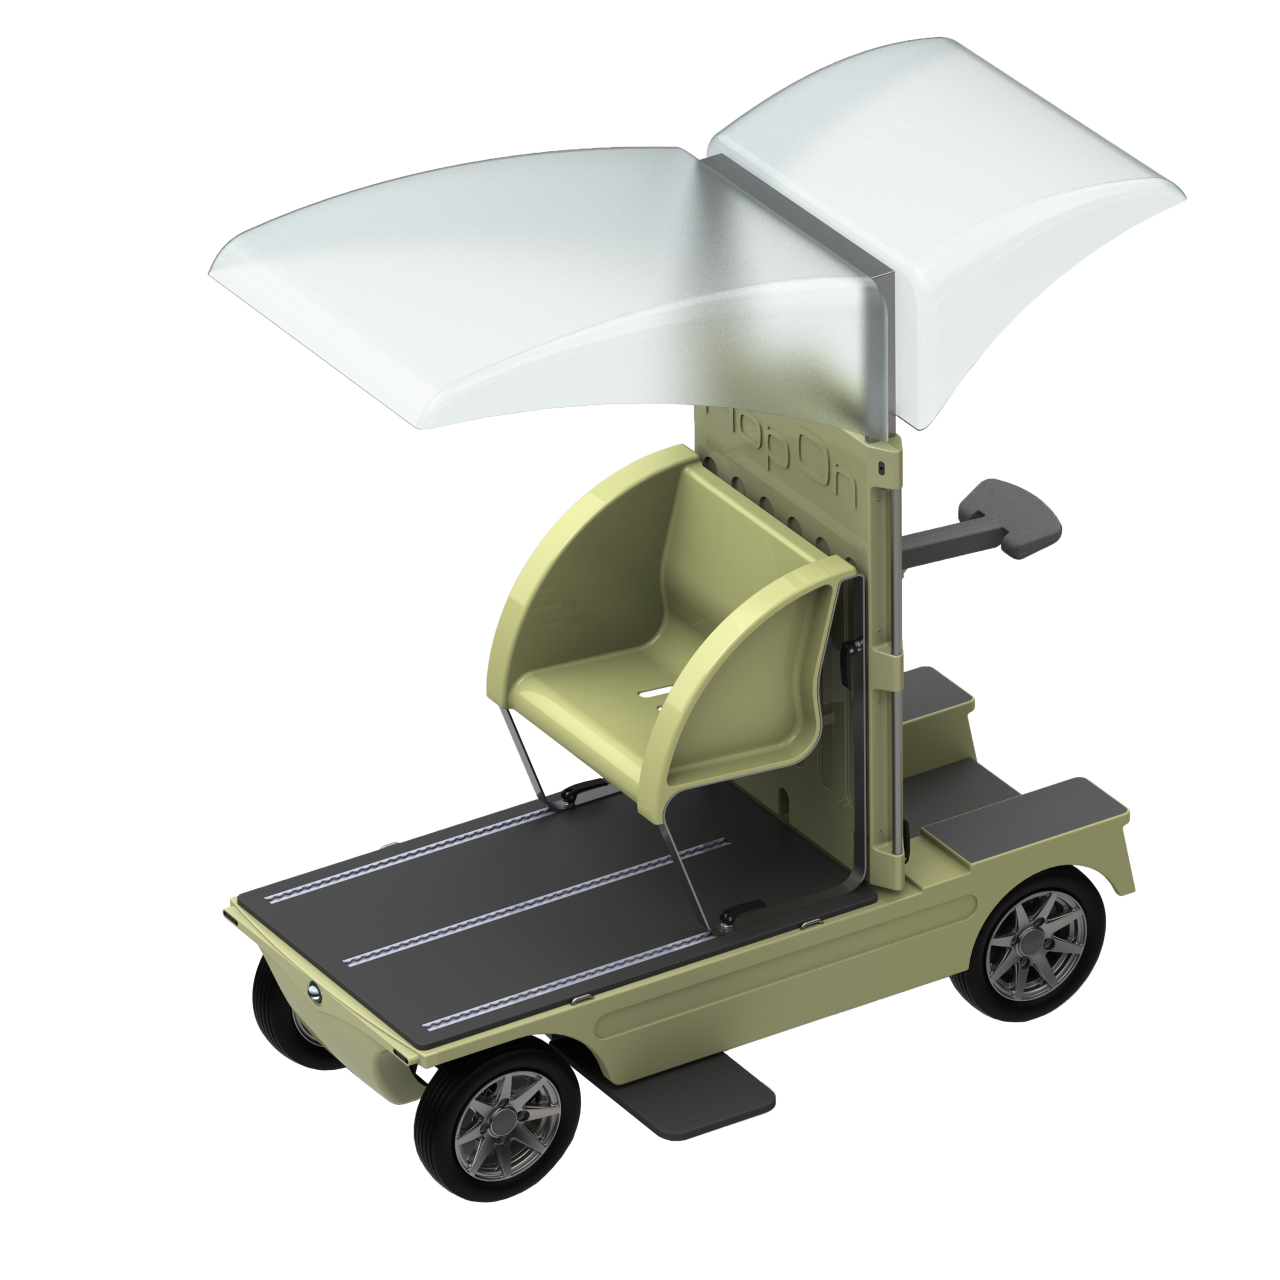 HopOn for passenger transport with seat and rain cover